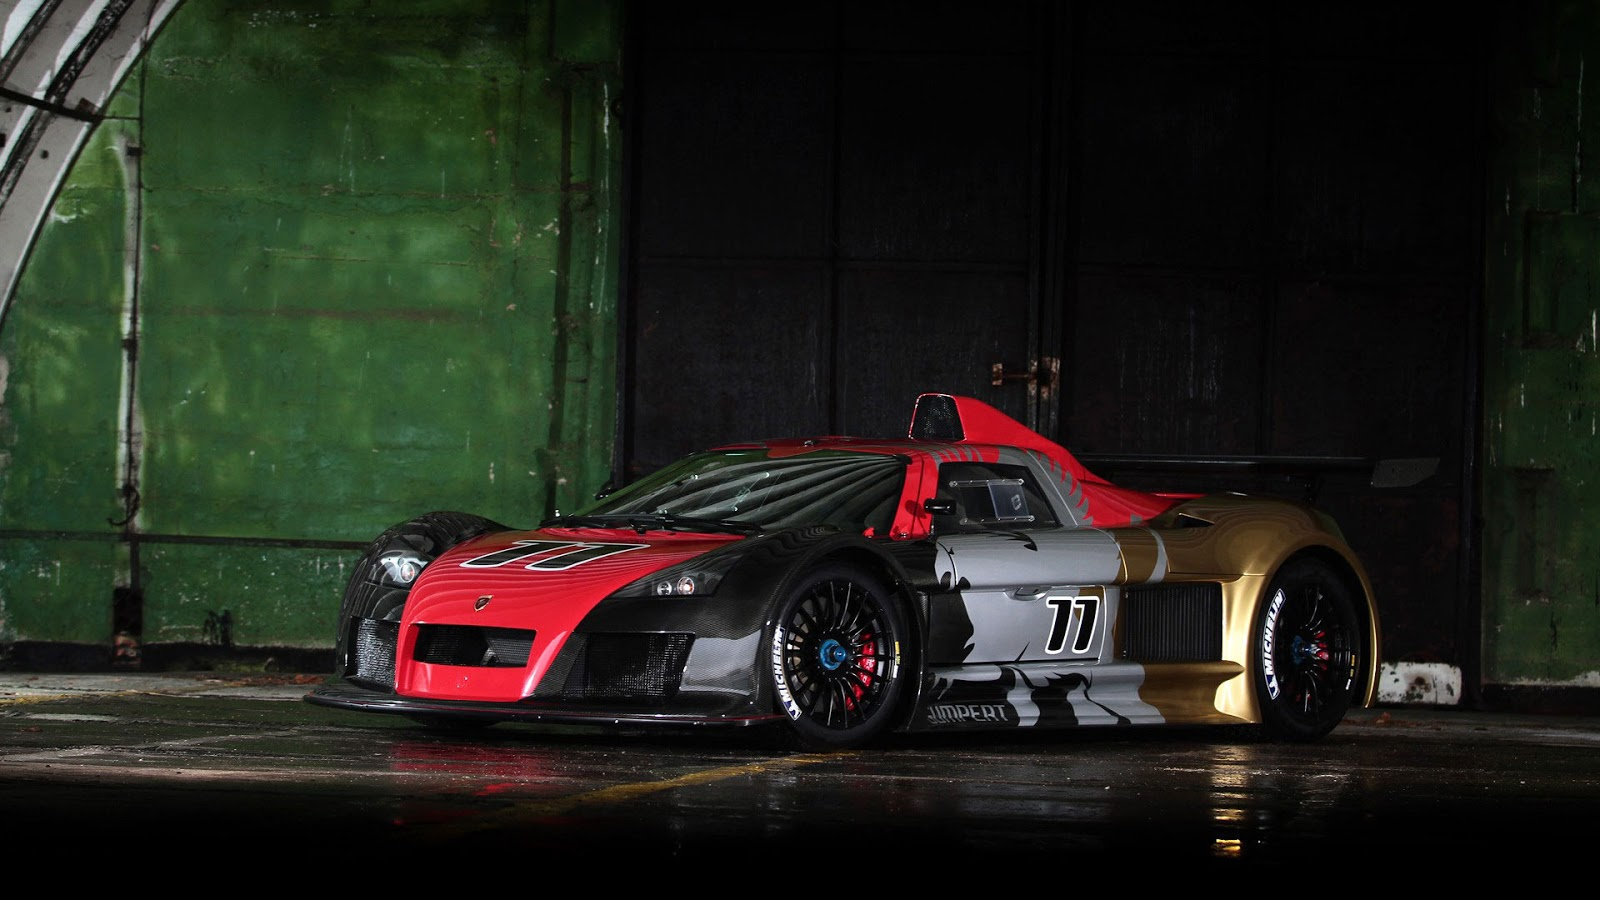 http://2.bp.blogspot.com/-ZrQ4bTT9ssU/UOSWytuurHI/AAAAAAAAO4Y/tqGMDe6IM_A/s1600/gumpert-apollo-sports-car-desktop-%2526-mac-wallpaper.jpg